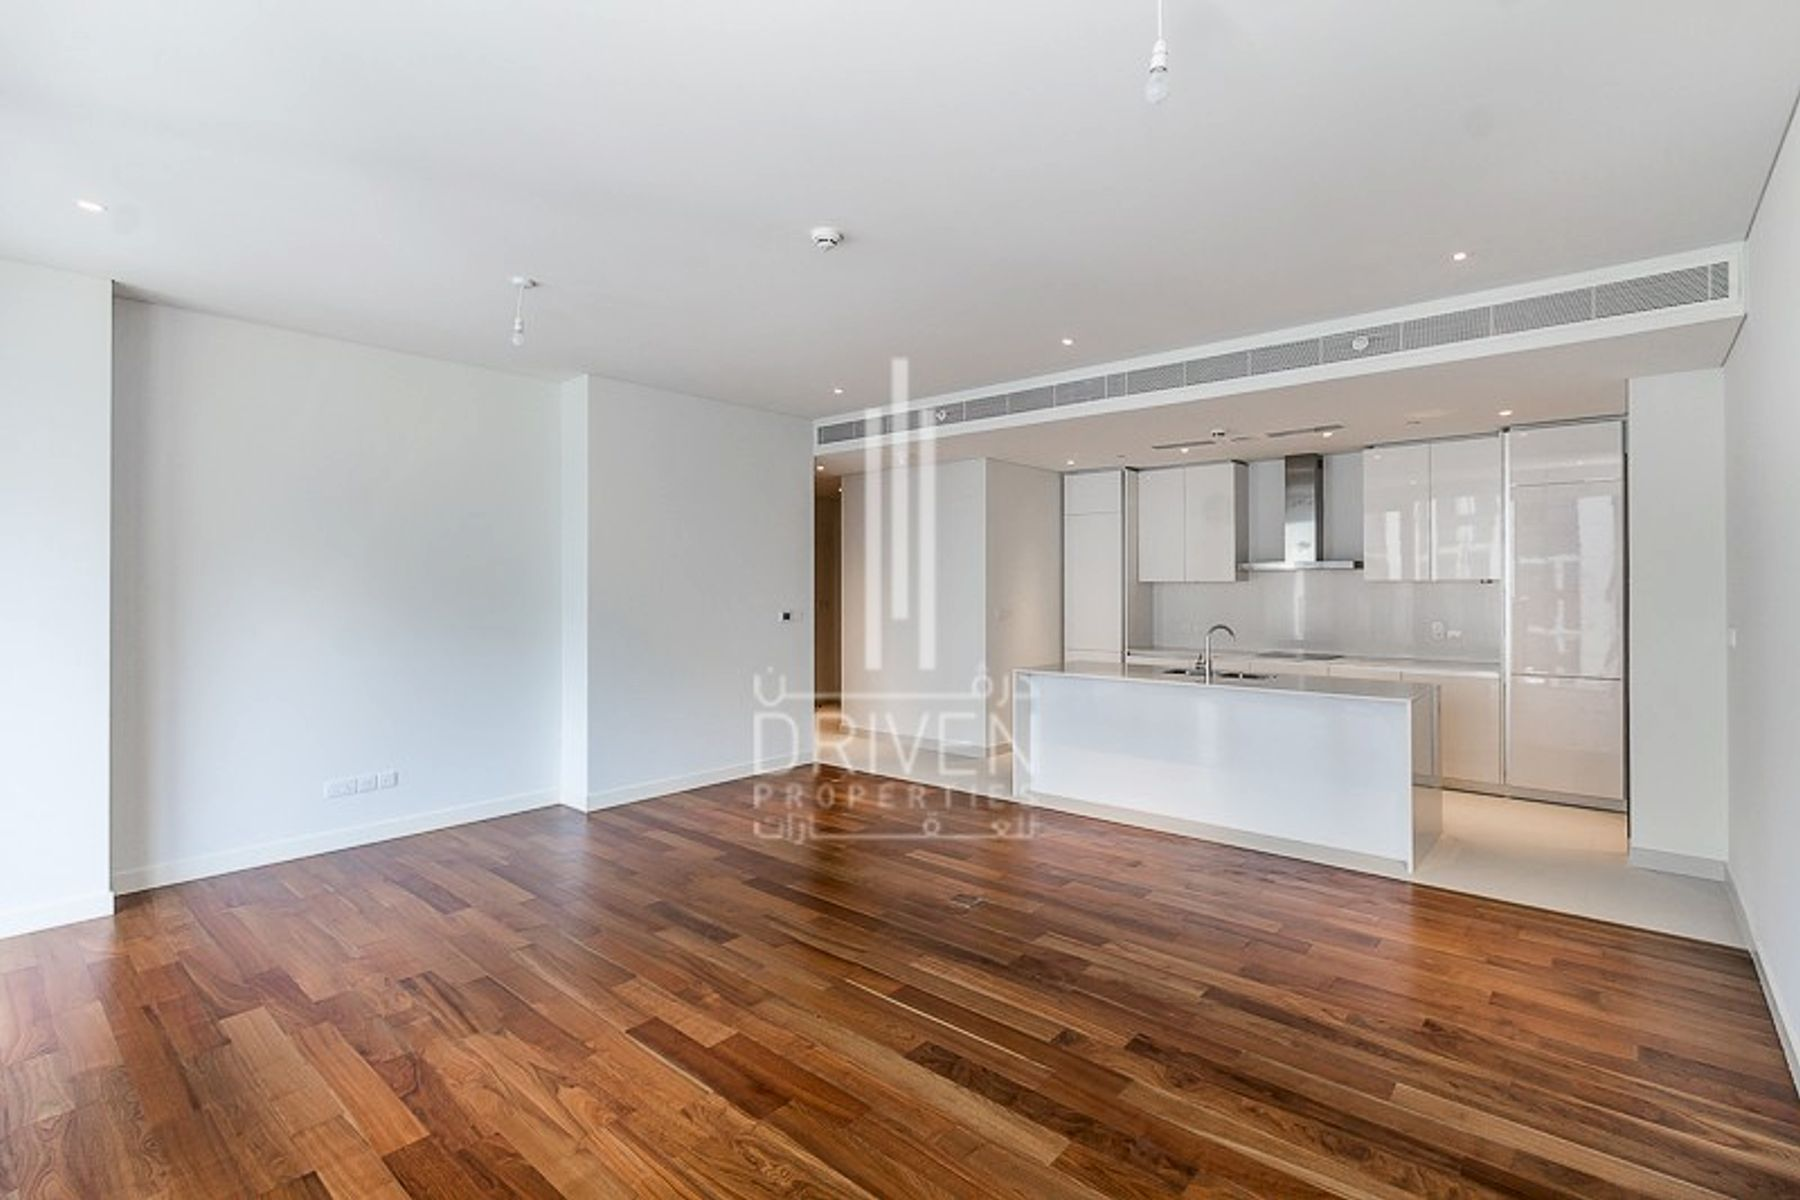 Type A1 Brand New and Rare 2 Bedroom Apt